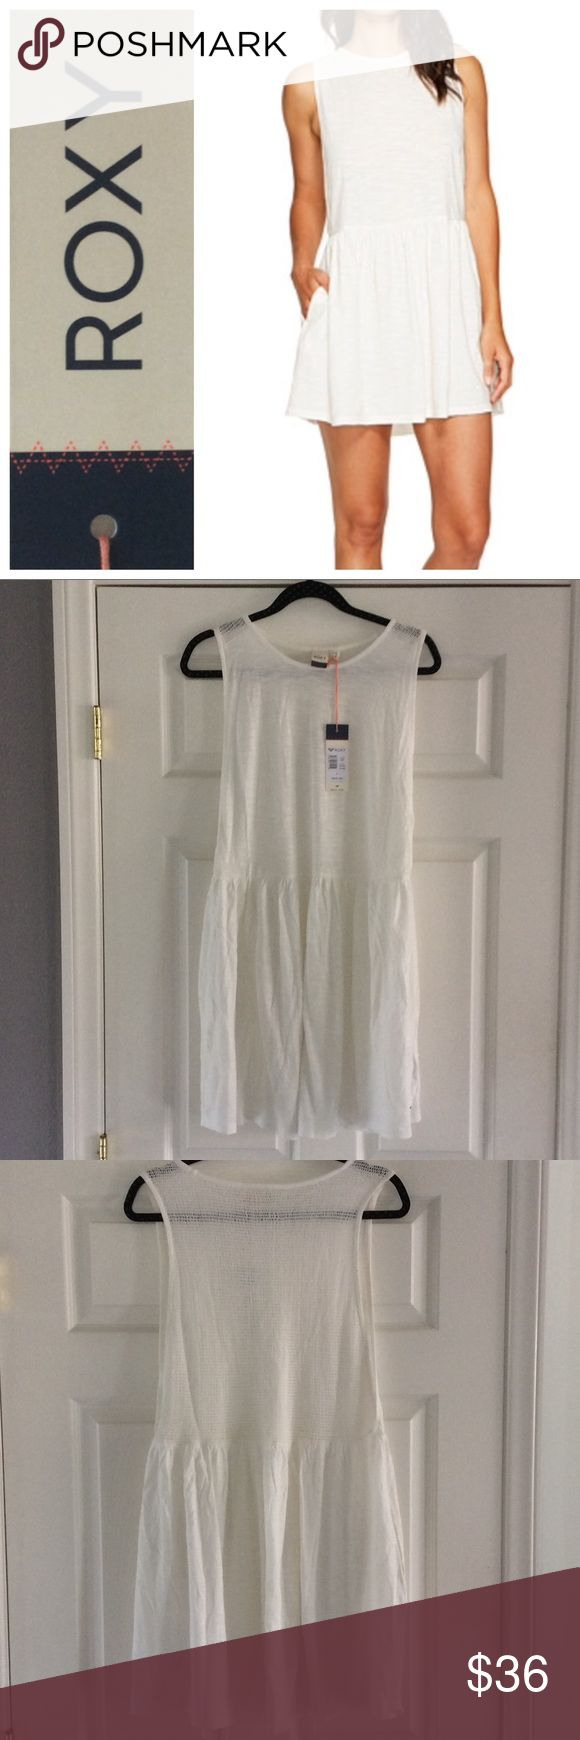 Roxy beach dress Roxy one of these nights white beach dress, size large.  Semi sheer 100% cotton with open netting back and deep arm holes.  So cute over a bikini!  NWT. Model pics from Pinterest to show fit. Roxy Dresses